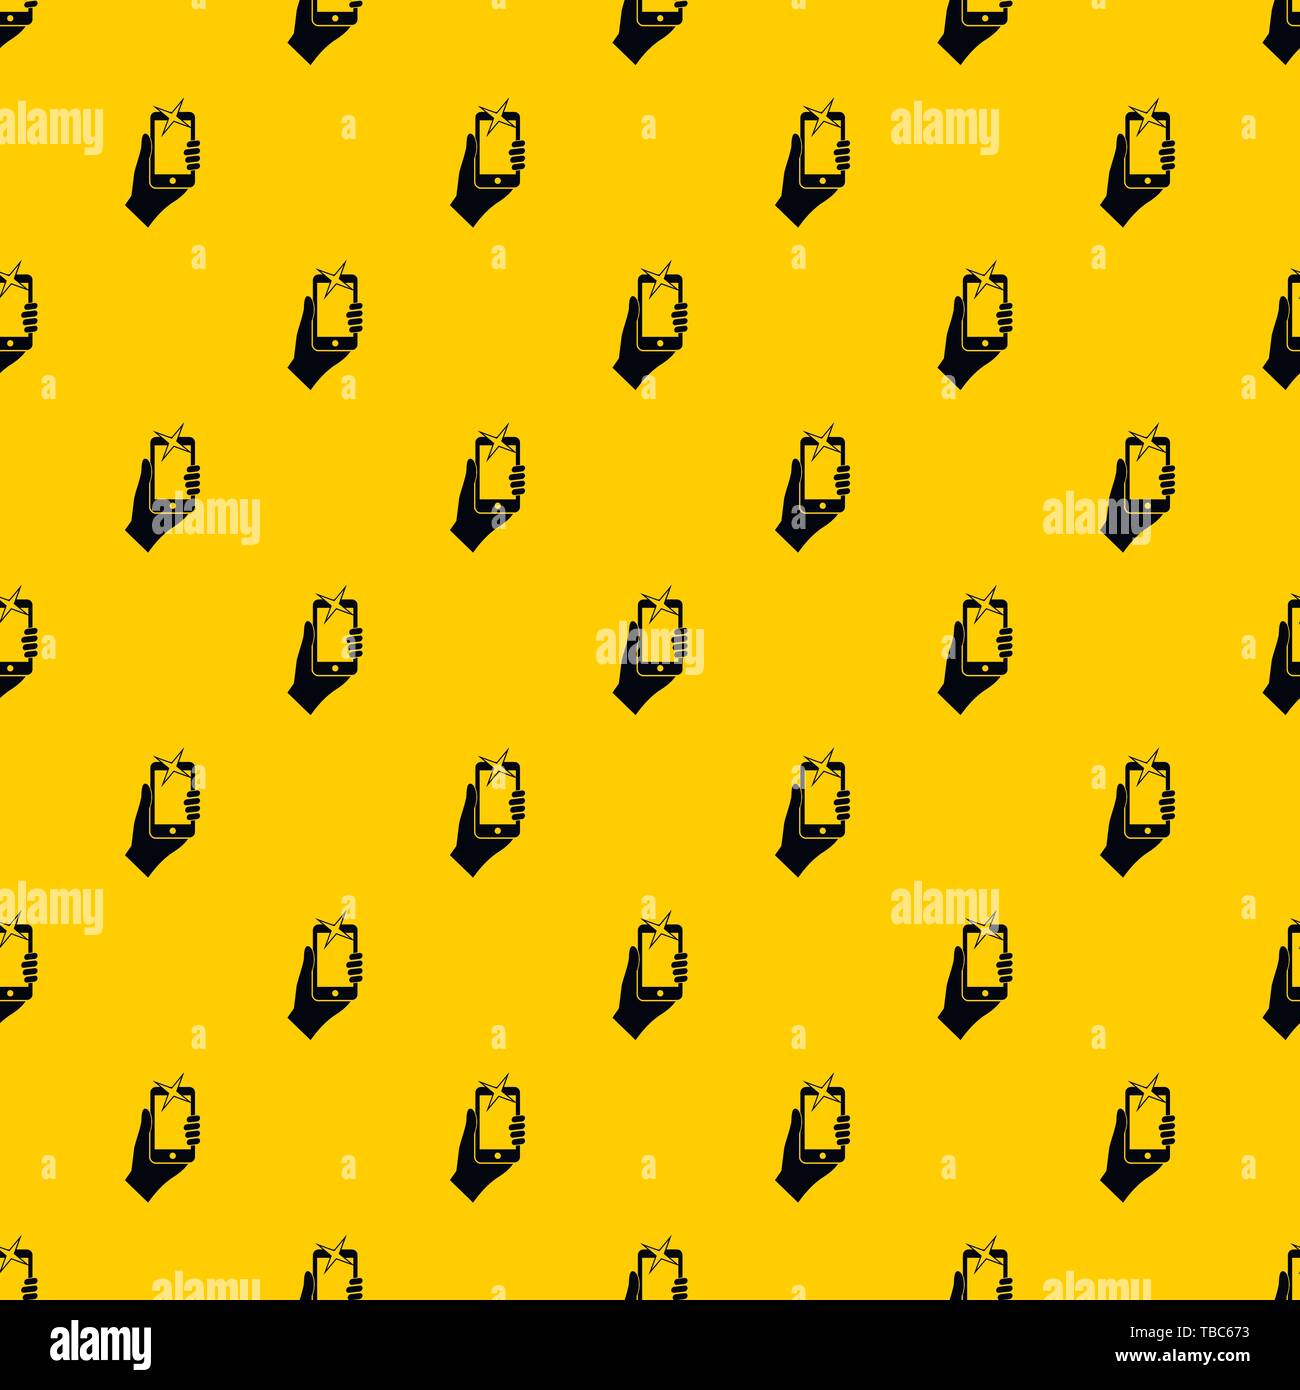 Hand photographed on mobile phone pattern vector - Stock Vector